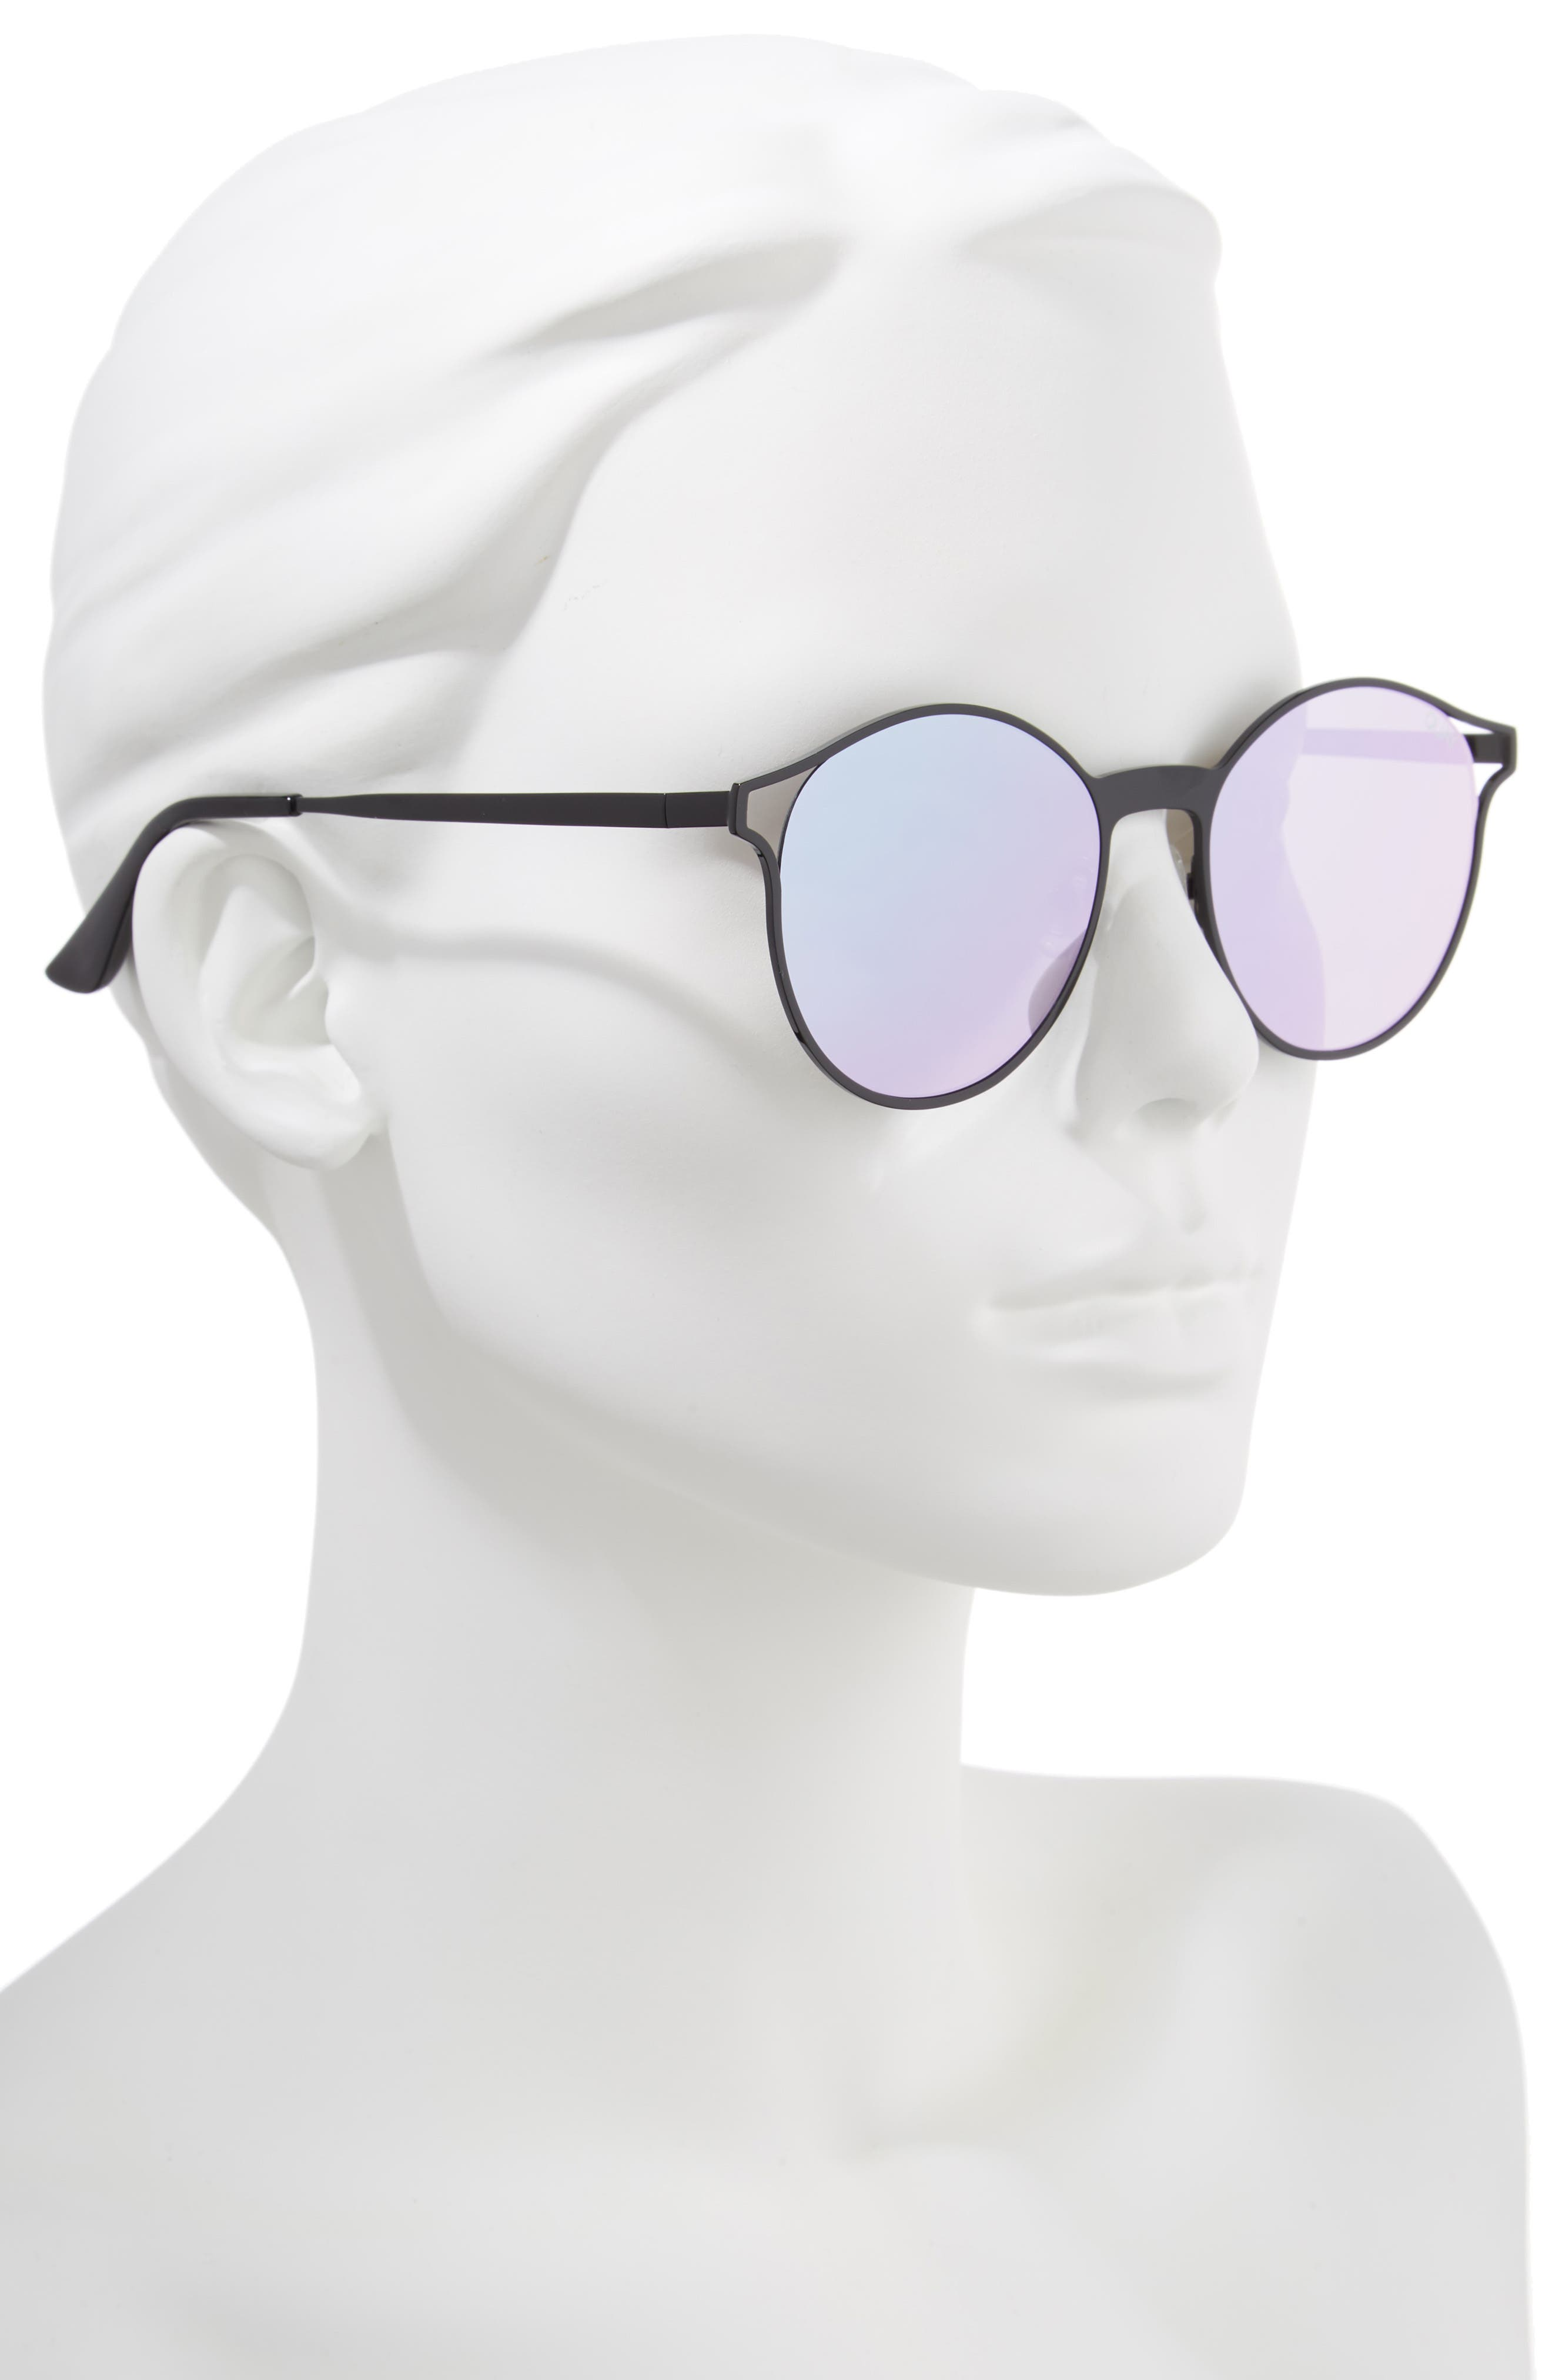 Here We Are 53mm Round Sunglasses,                             Alternate thumbnail 2, color,                             BLACK/ PURPLE